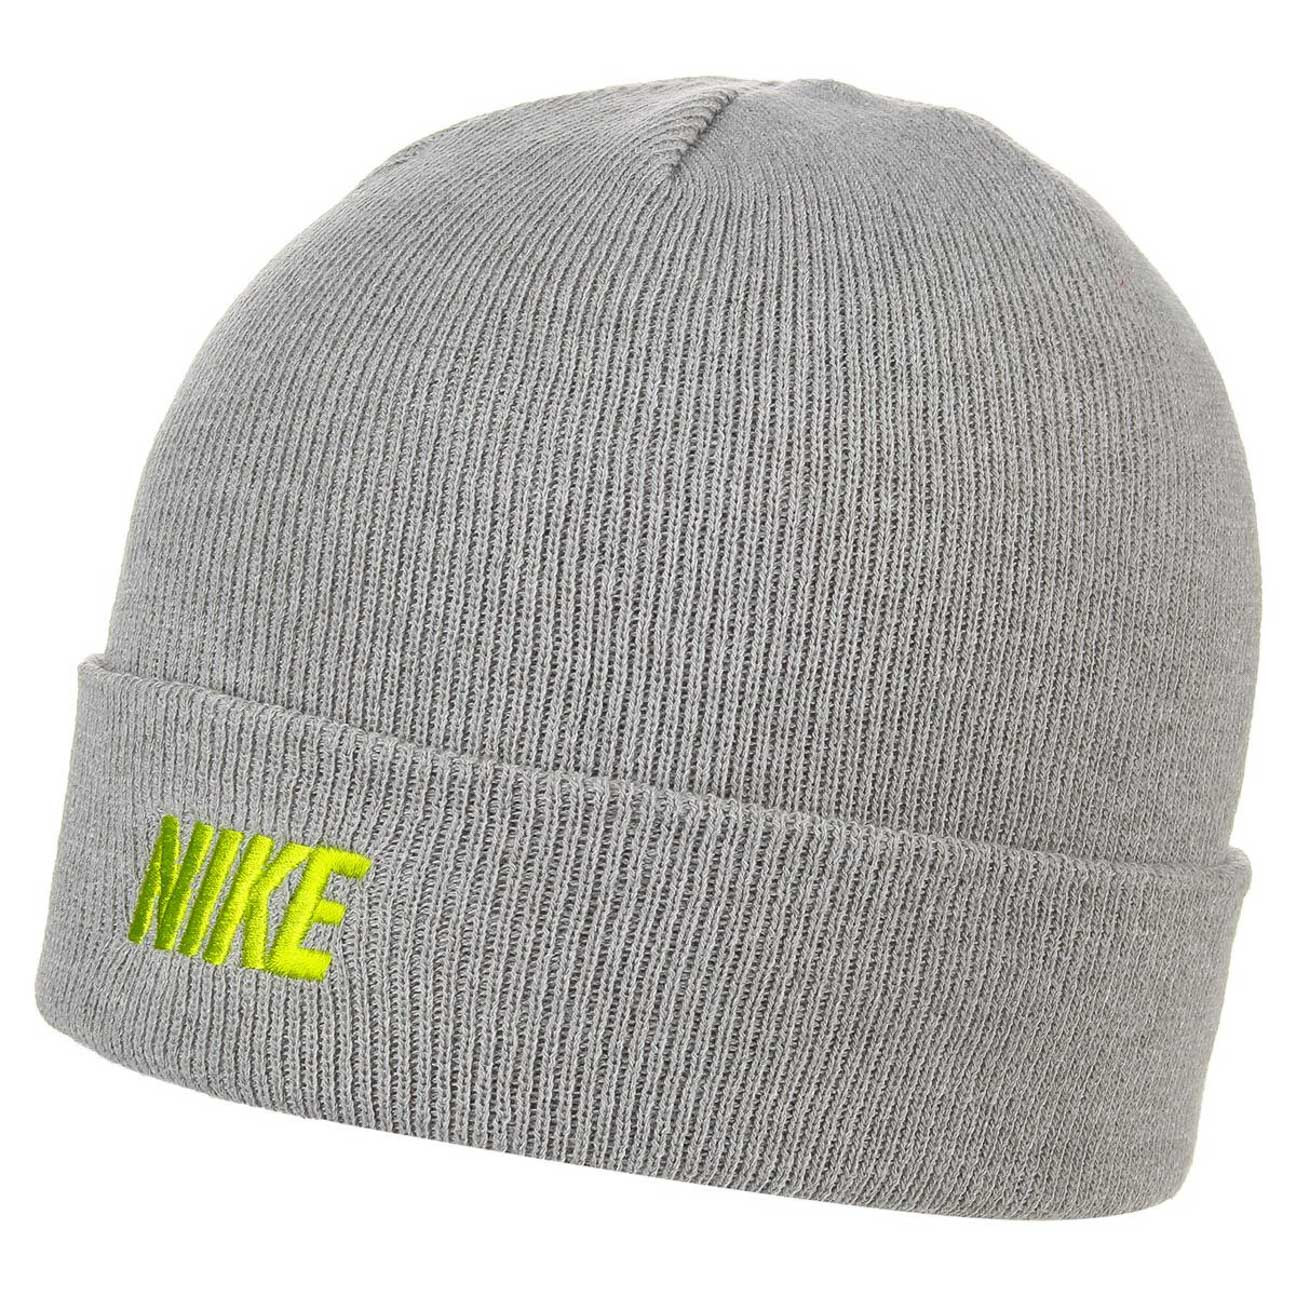 Best Of Iconic Winter Knit Hat by Nike Eur 19 95 Hats Caps Winter Knit Hats Of Charming 40 Photos Winter Knit Hats